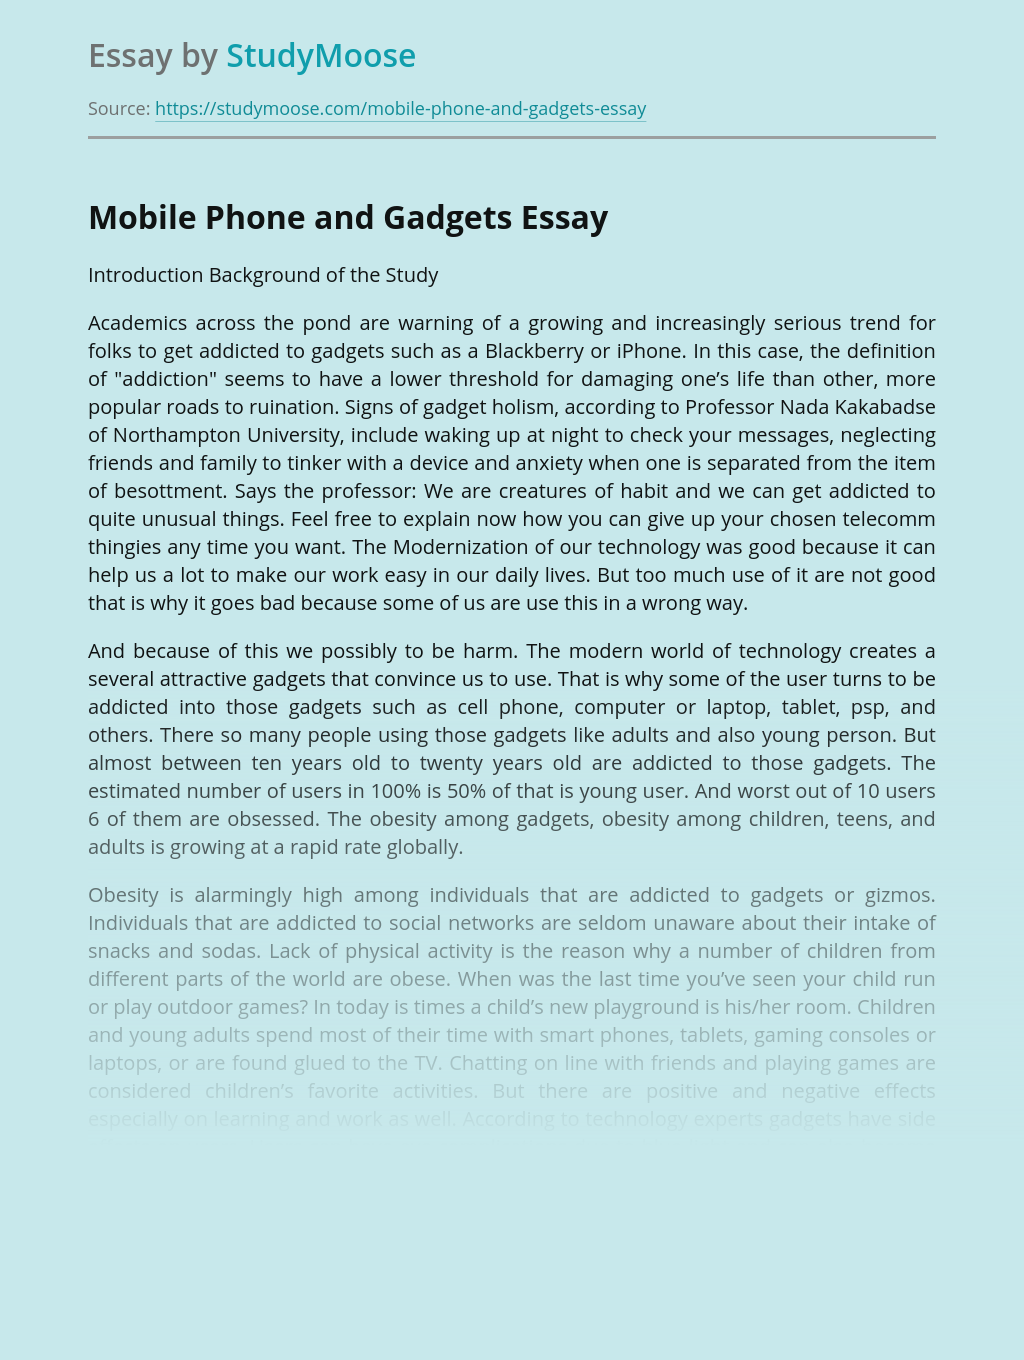 Mobile Phone and Gadgets